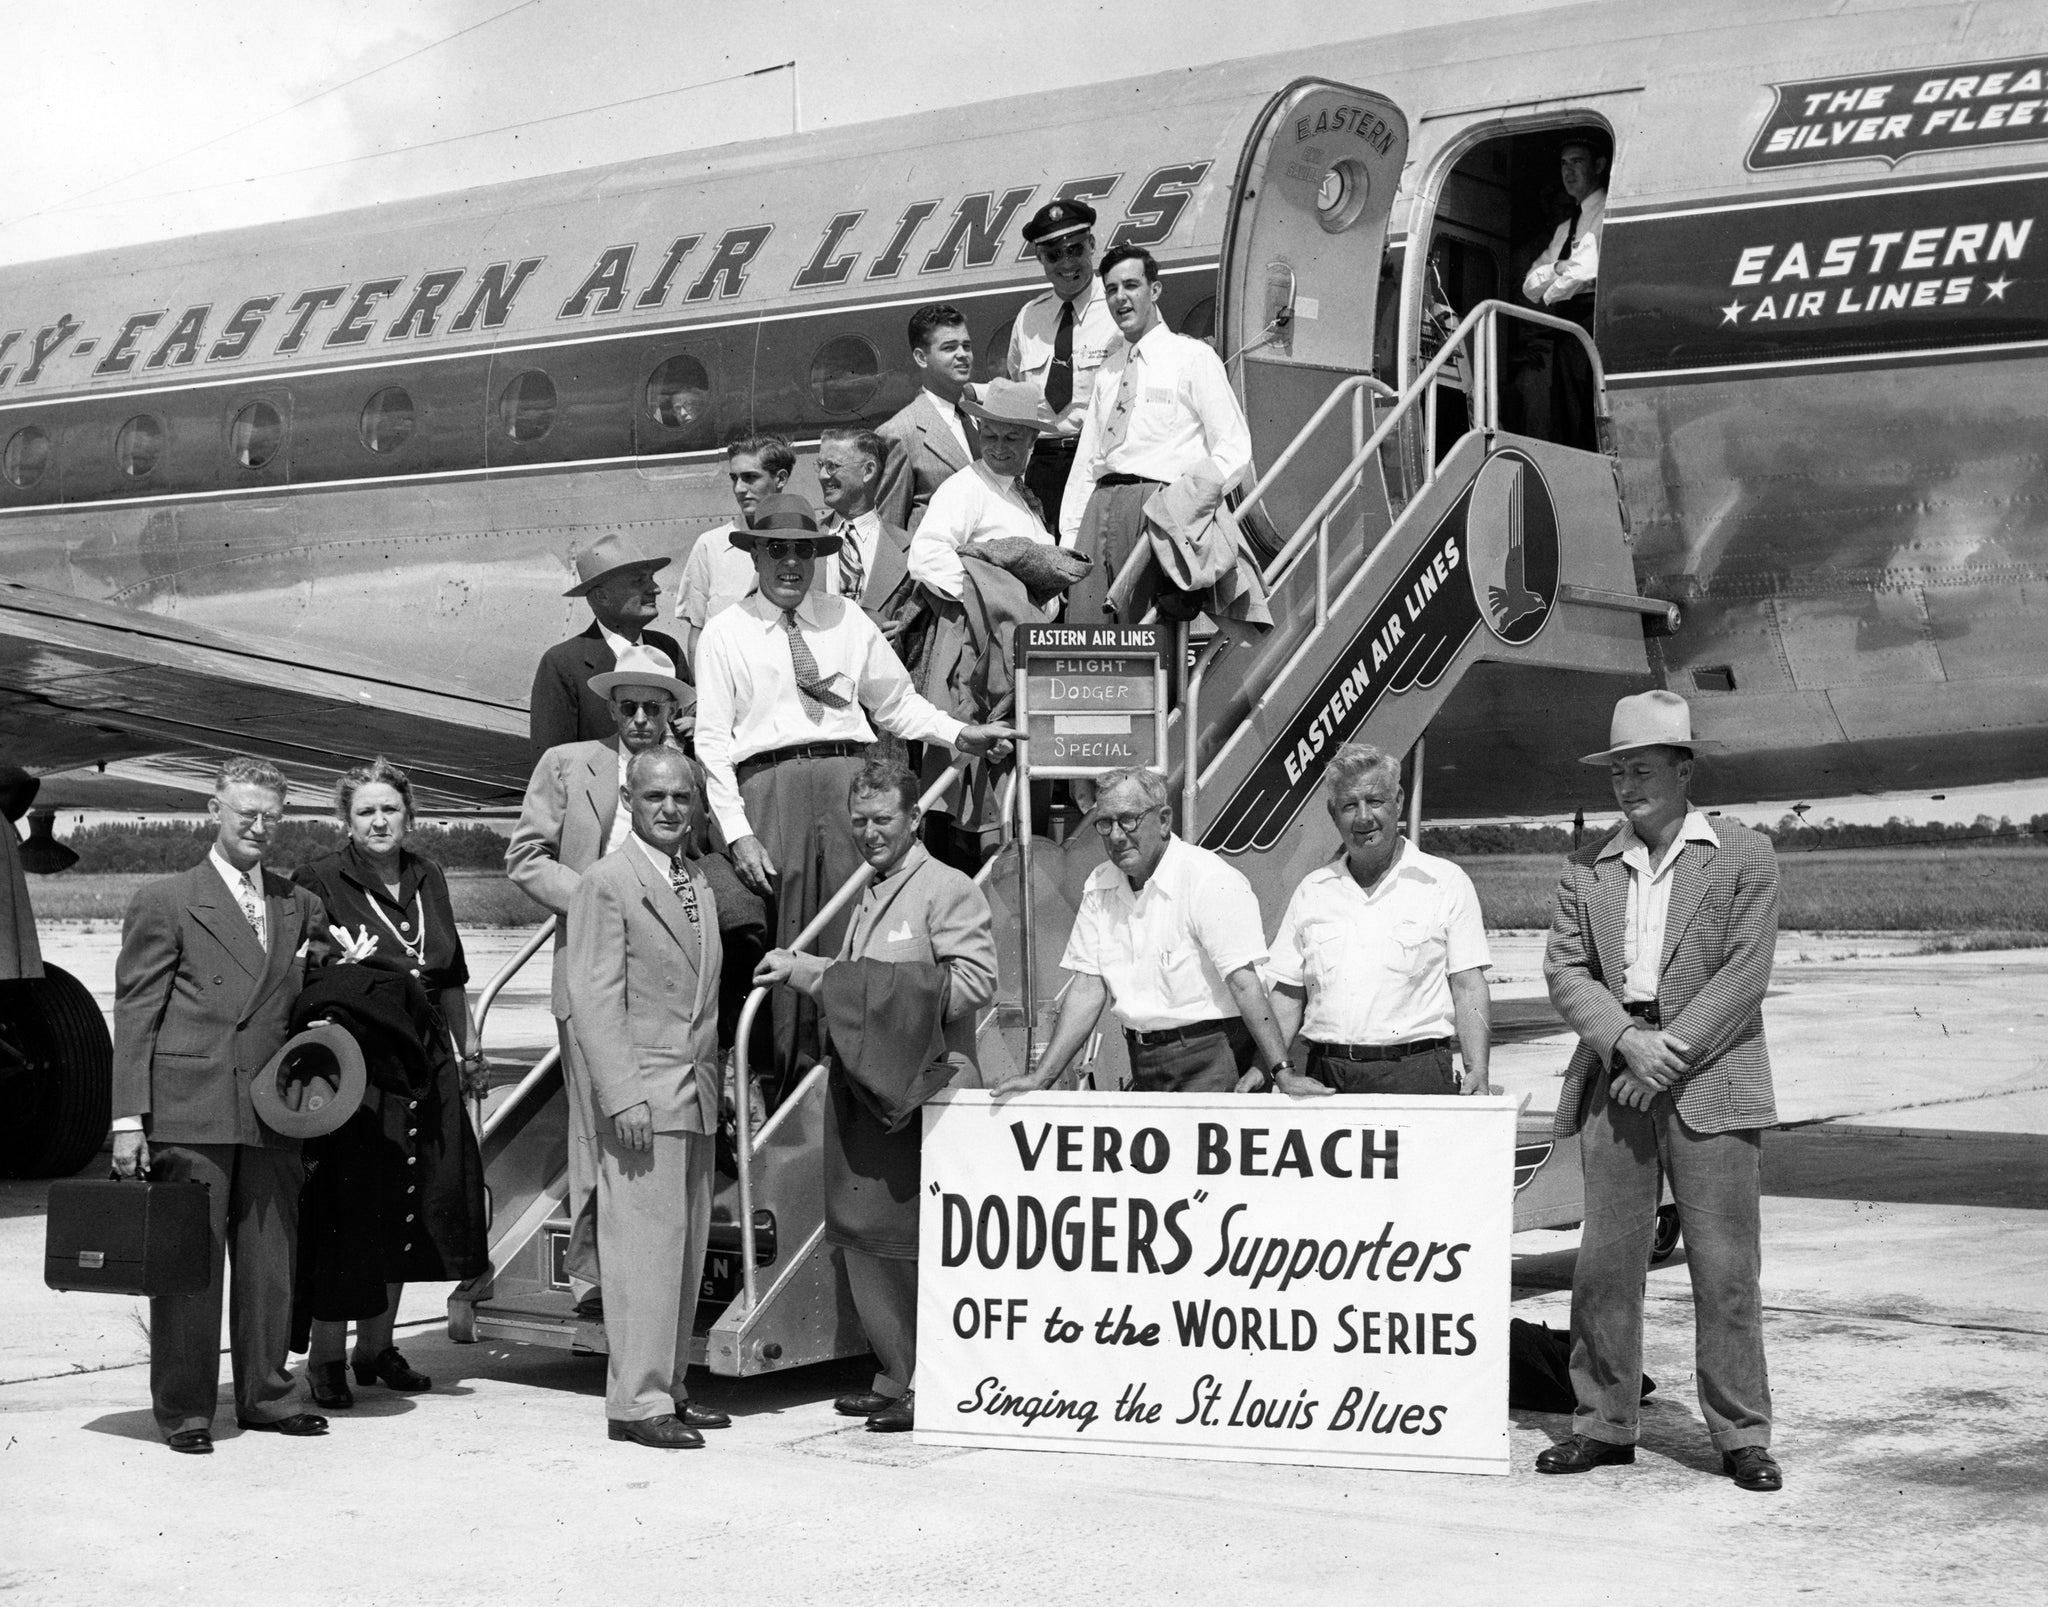 Brooklyn Dodgers supporters from Vero Beach on their way to the 1949 World Series. -- Indian River County Historical Society Collection, Archive Center, Indian River County Main Library